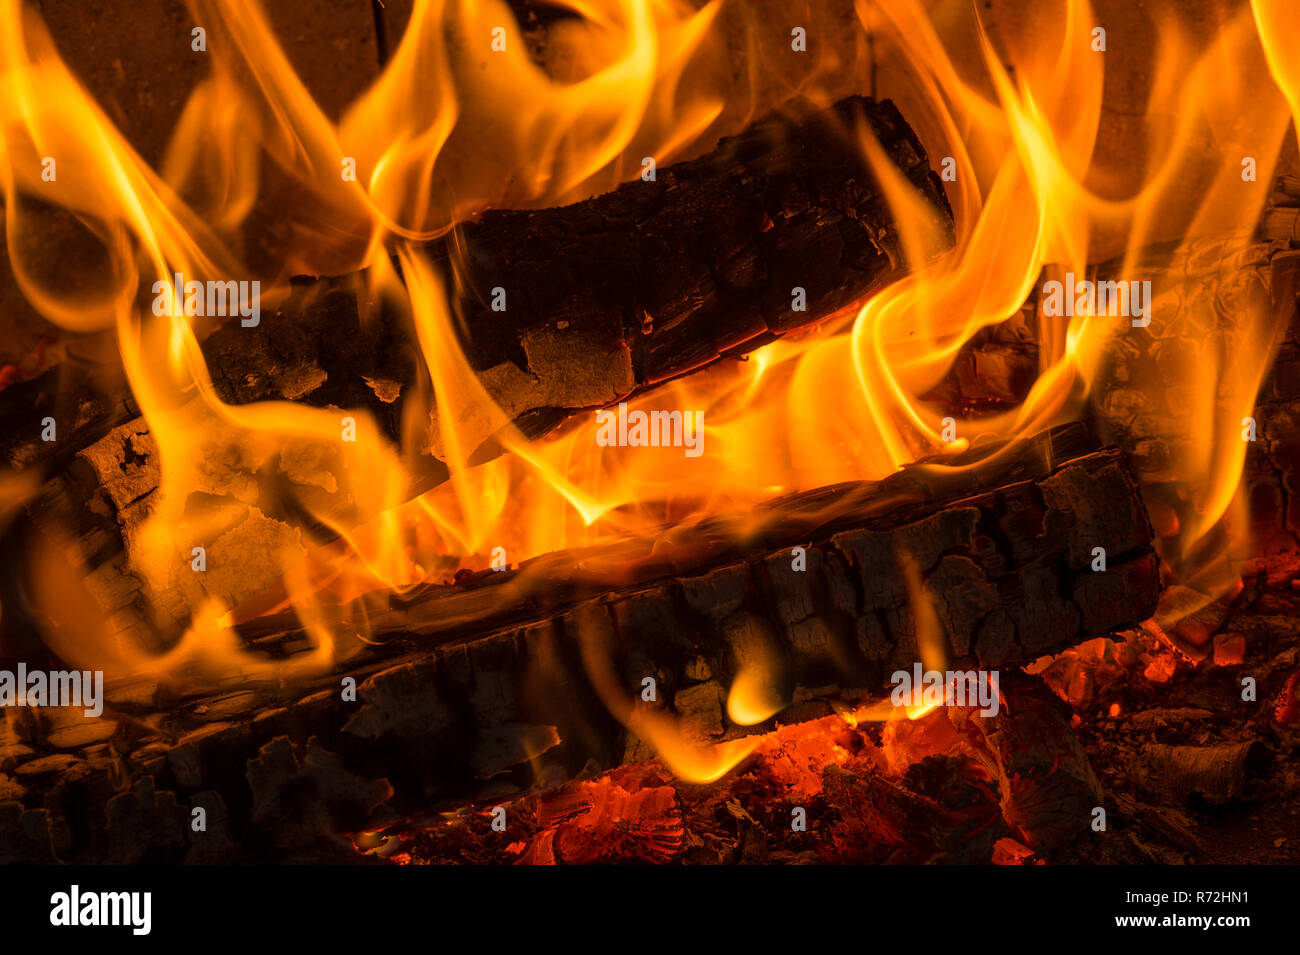 Flames - Stock Image